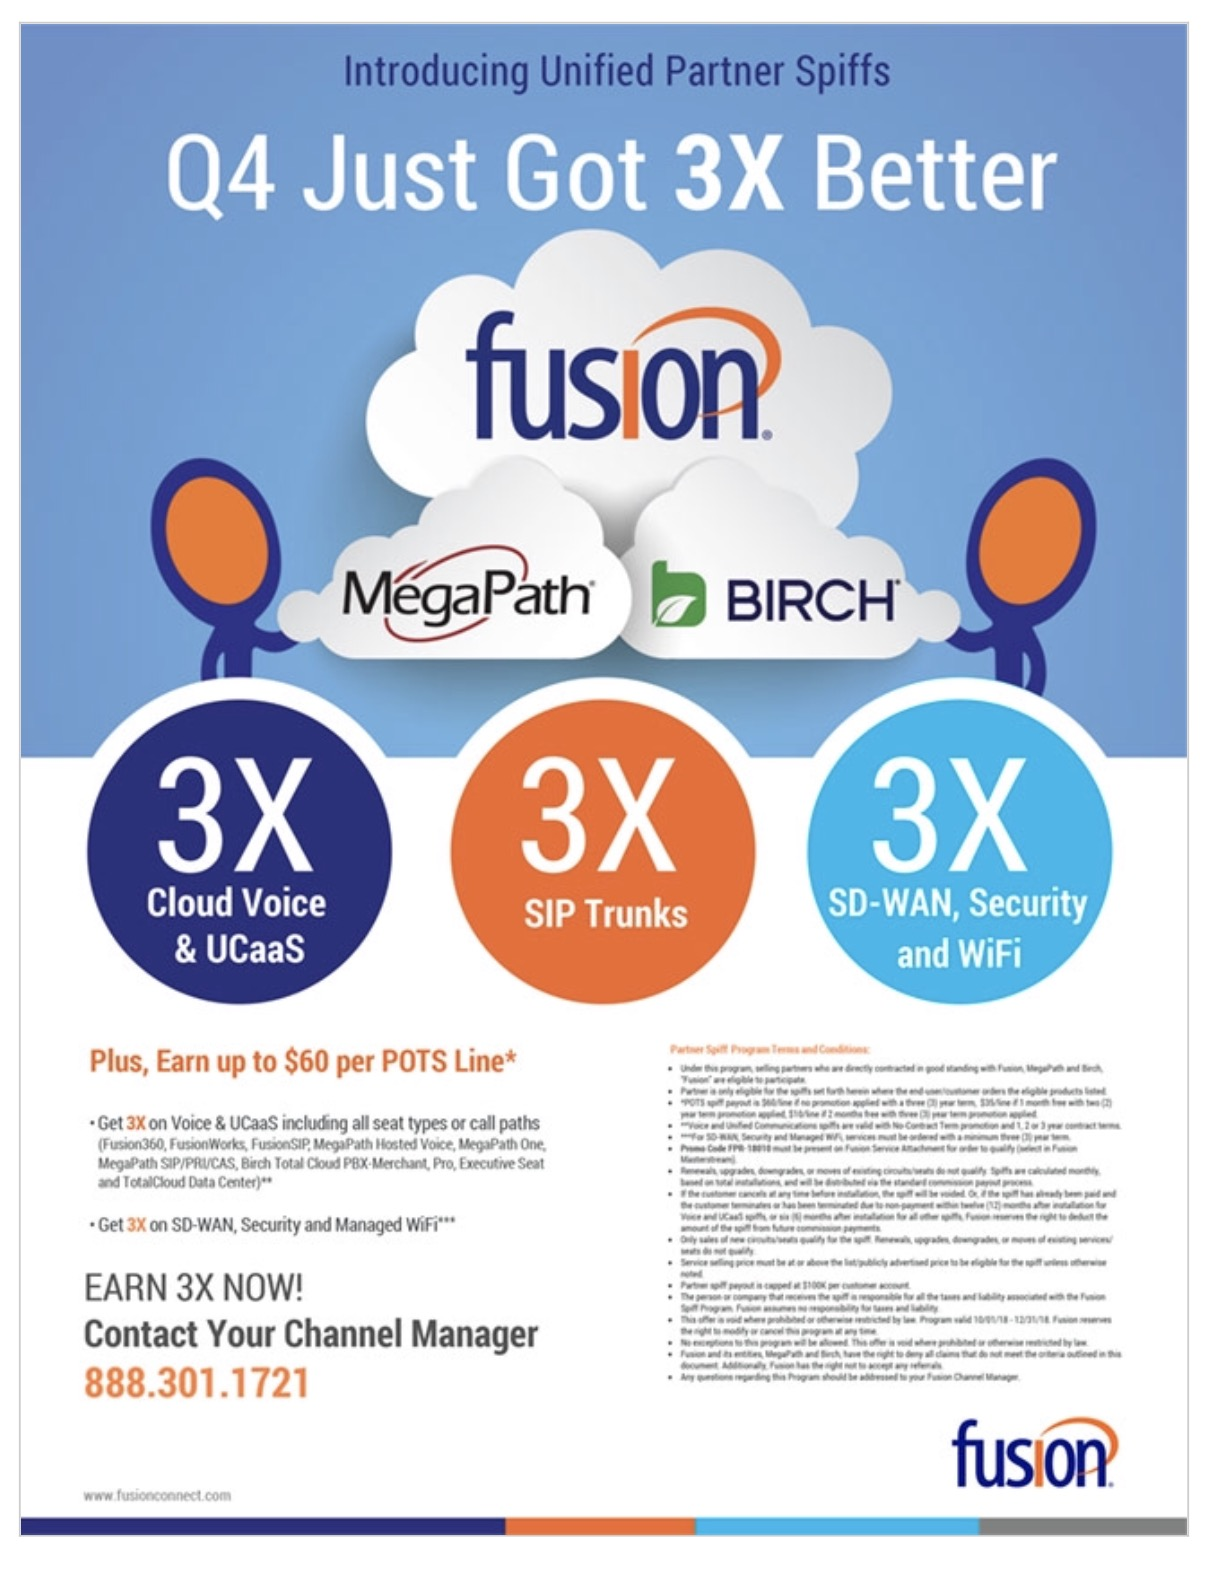 Fusion Unified Partner Spiffs for Q4 – 4 Days Left